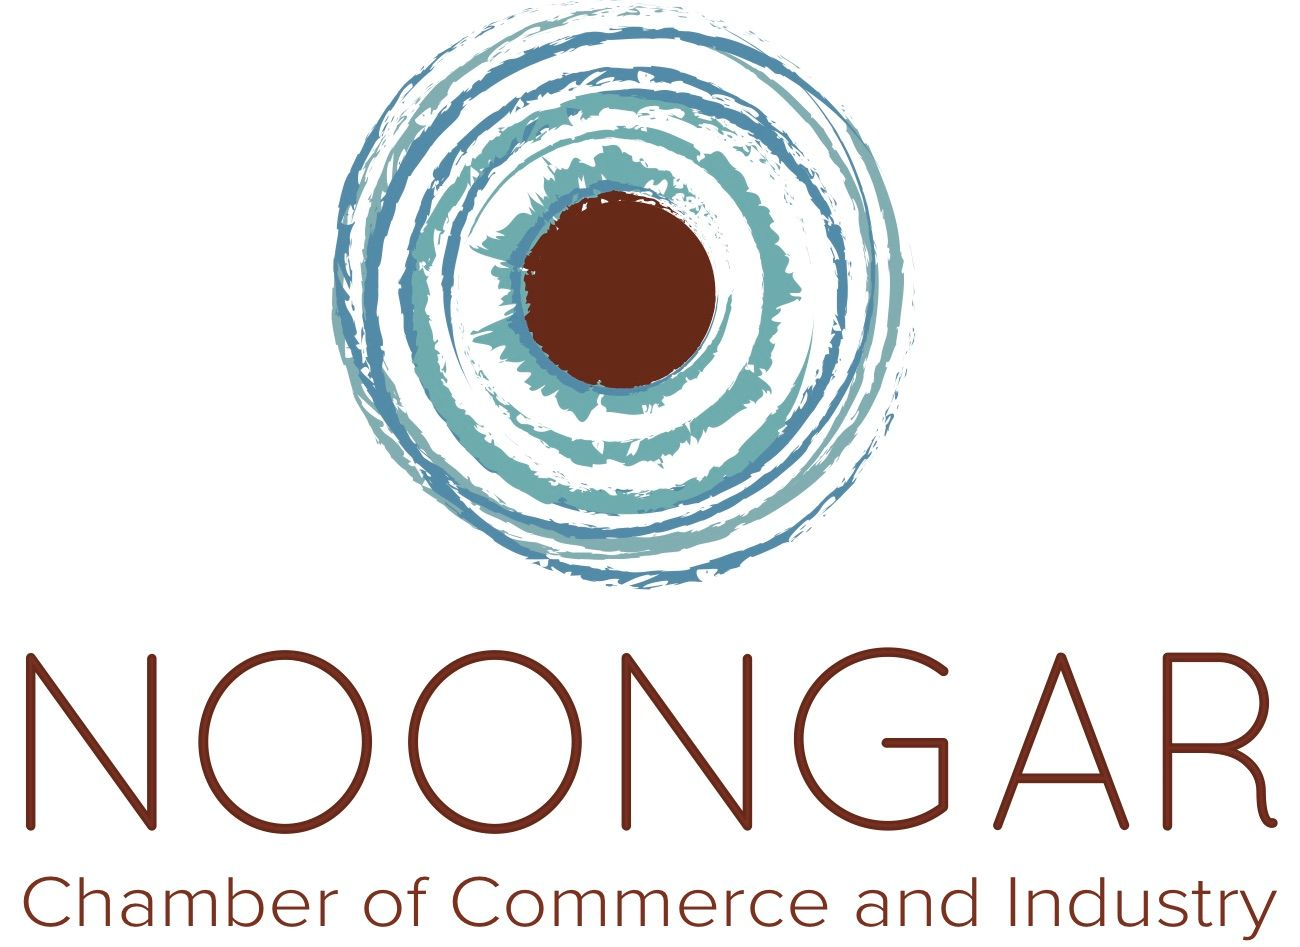 Noongar Chamber of commerce